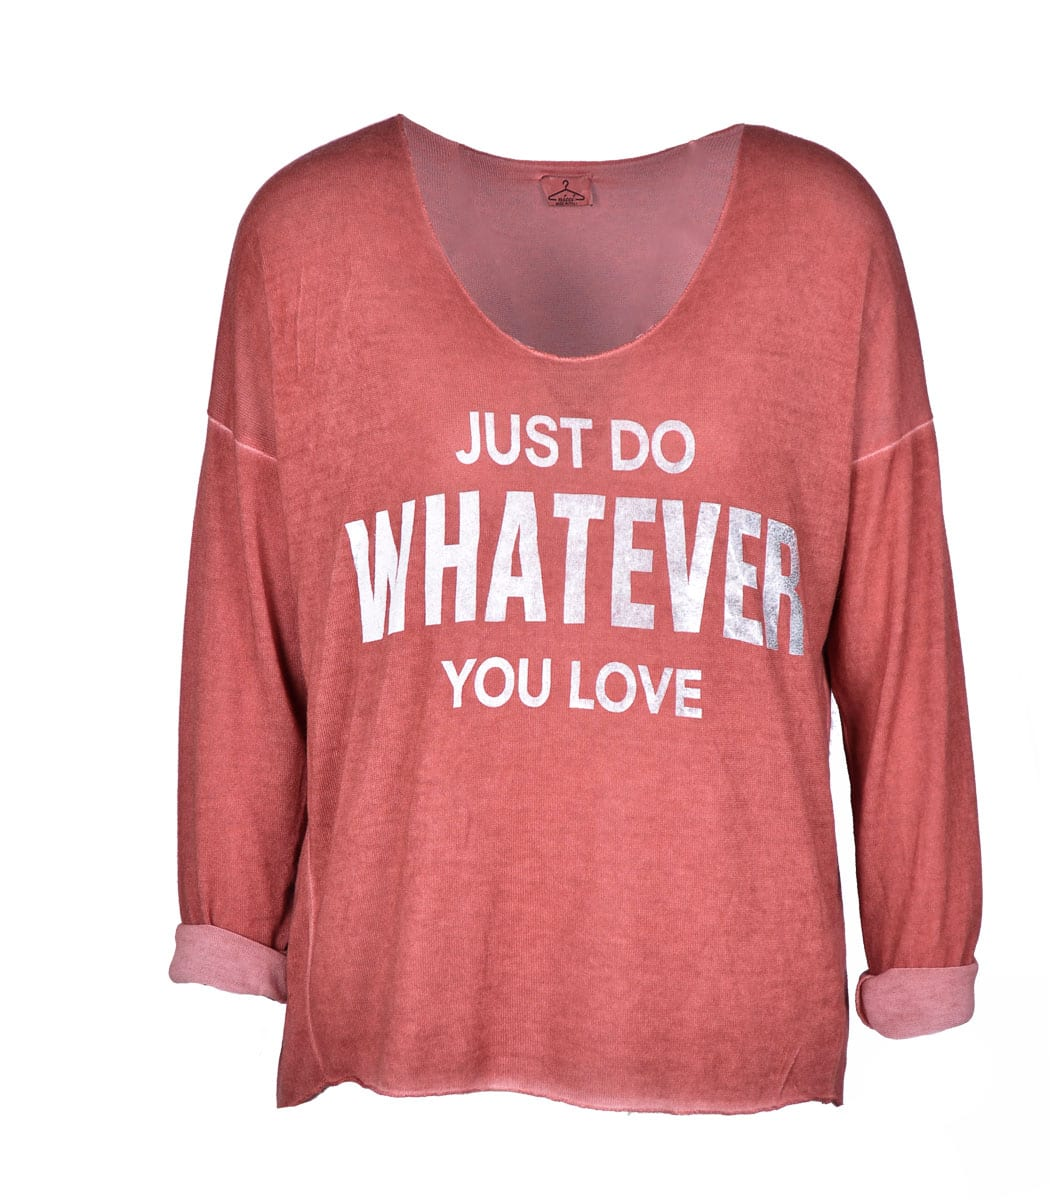 Long sleeve overdyed whatever print top